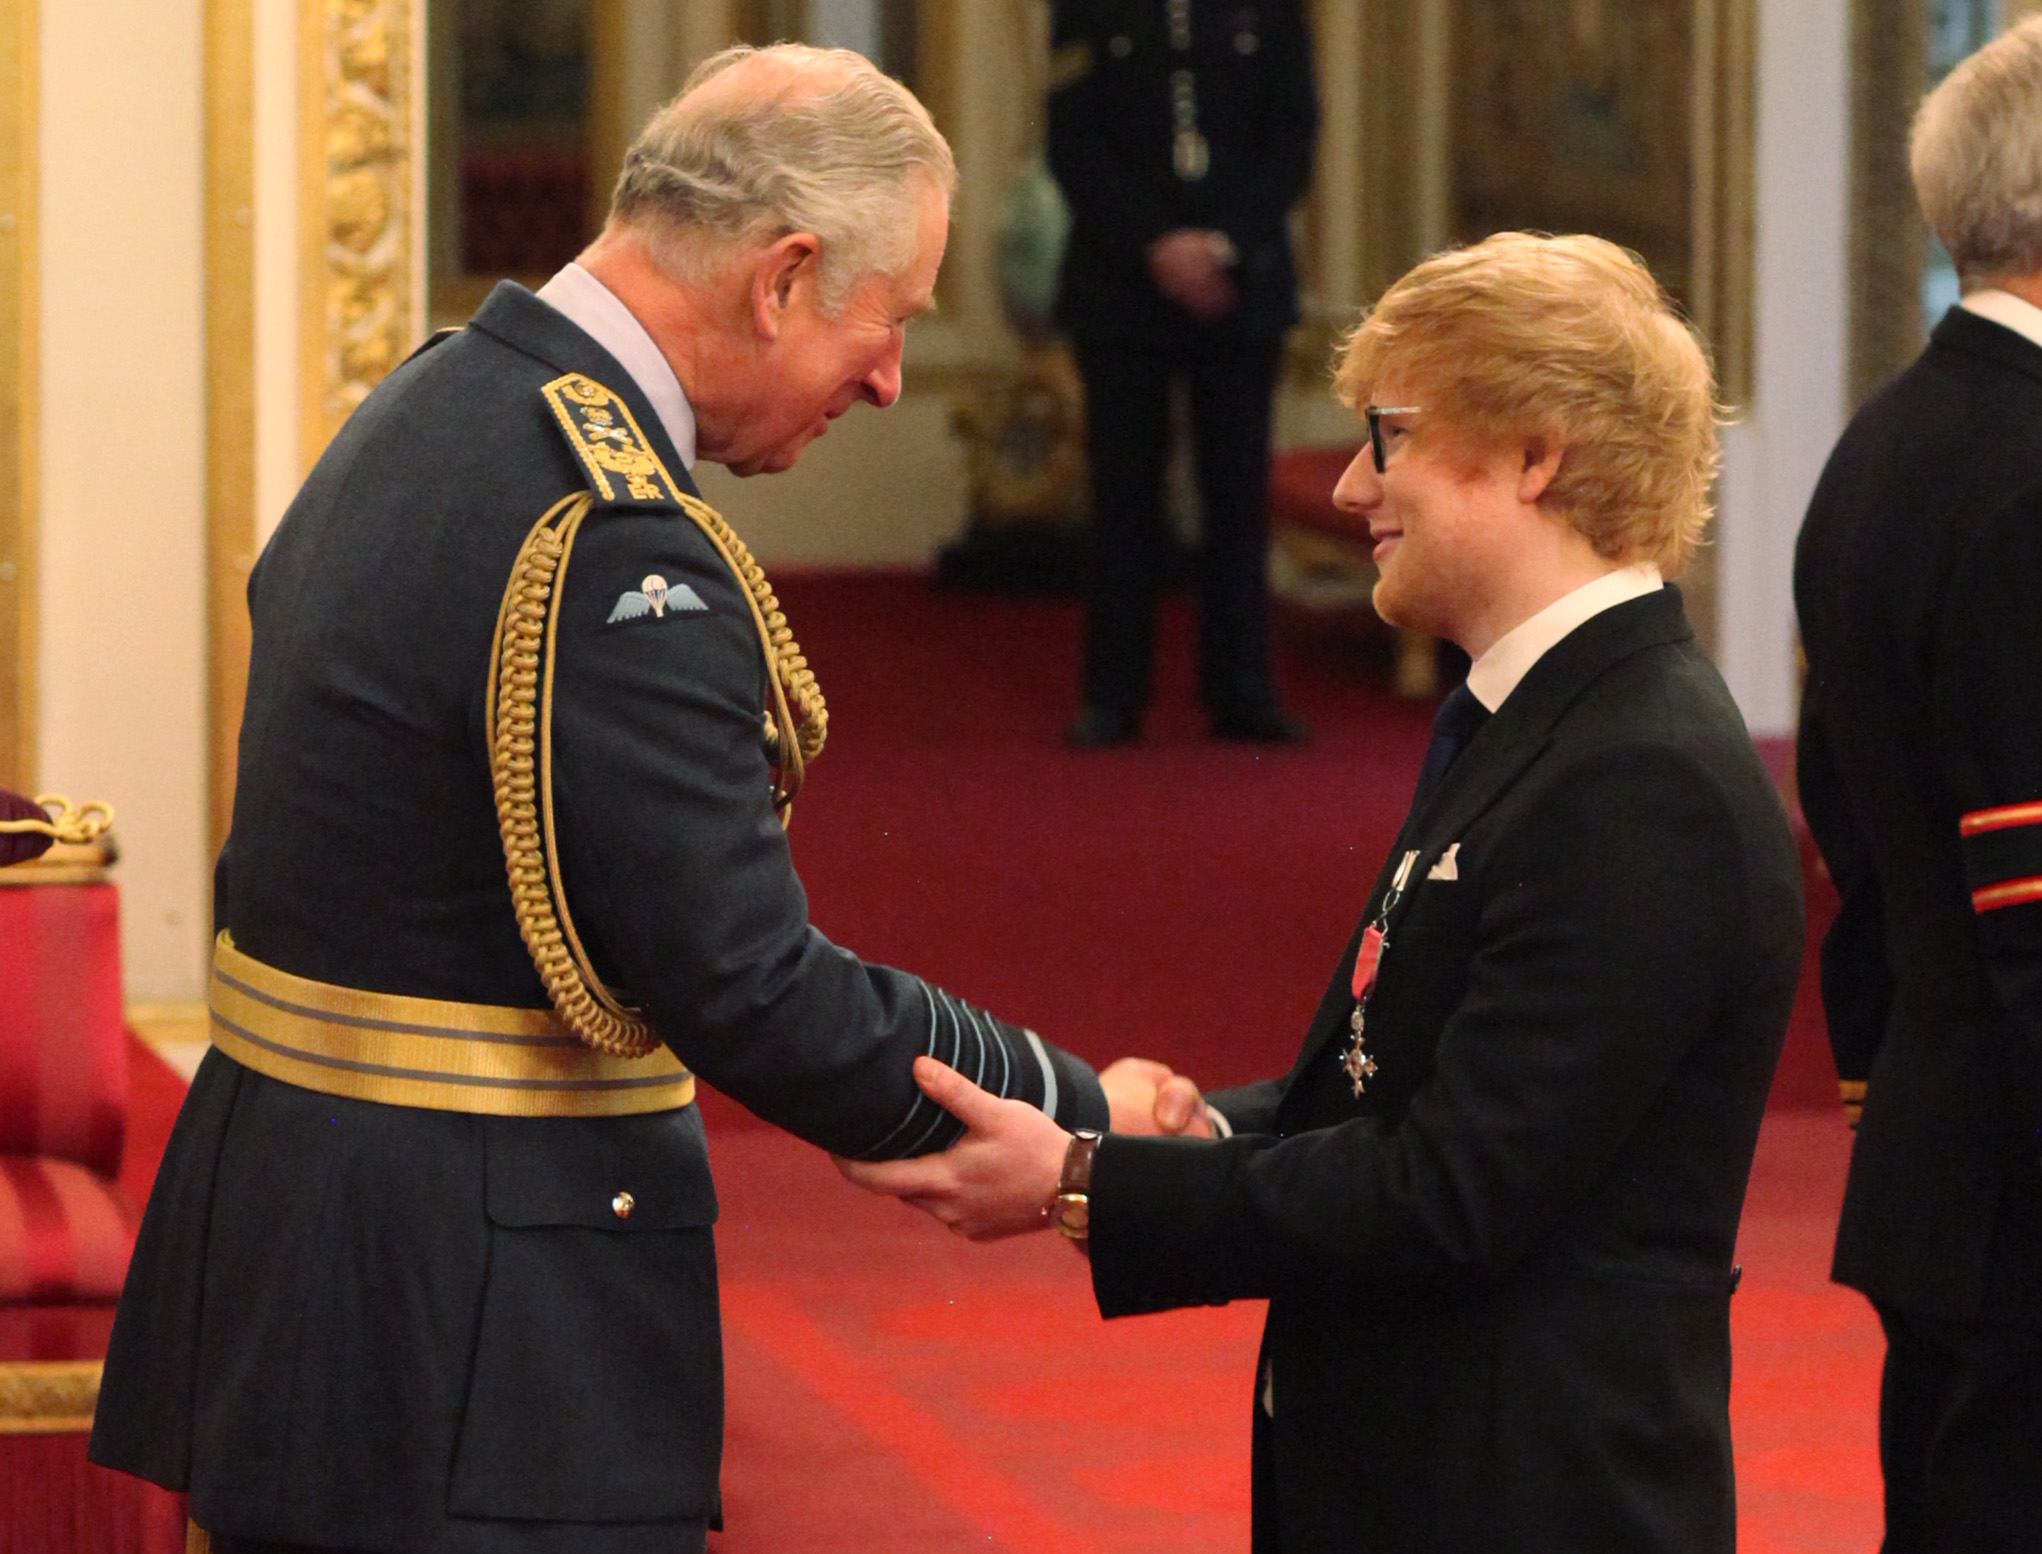 MBE (Member of the Order of the British Empire)